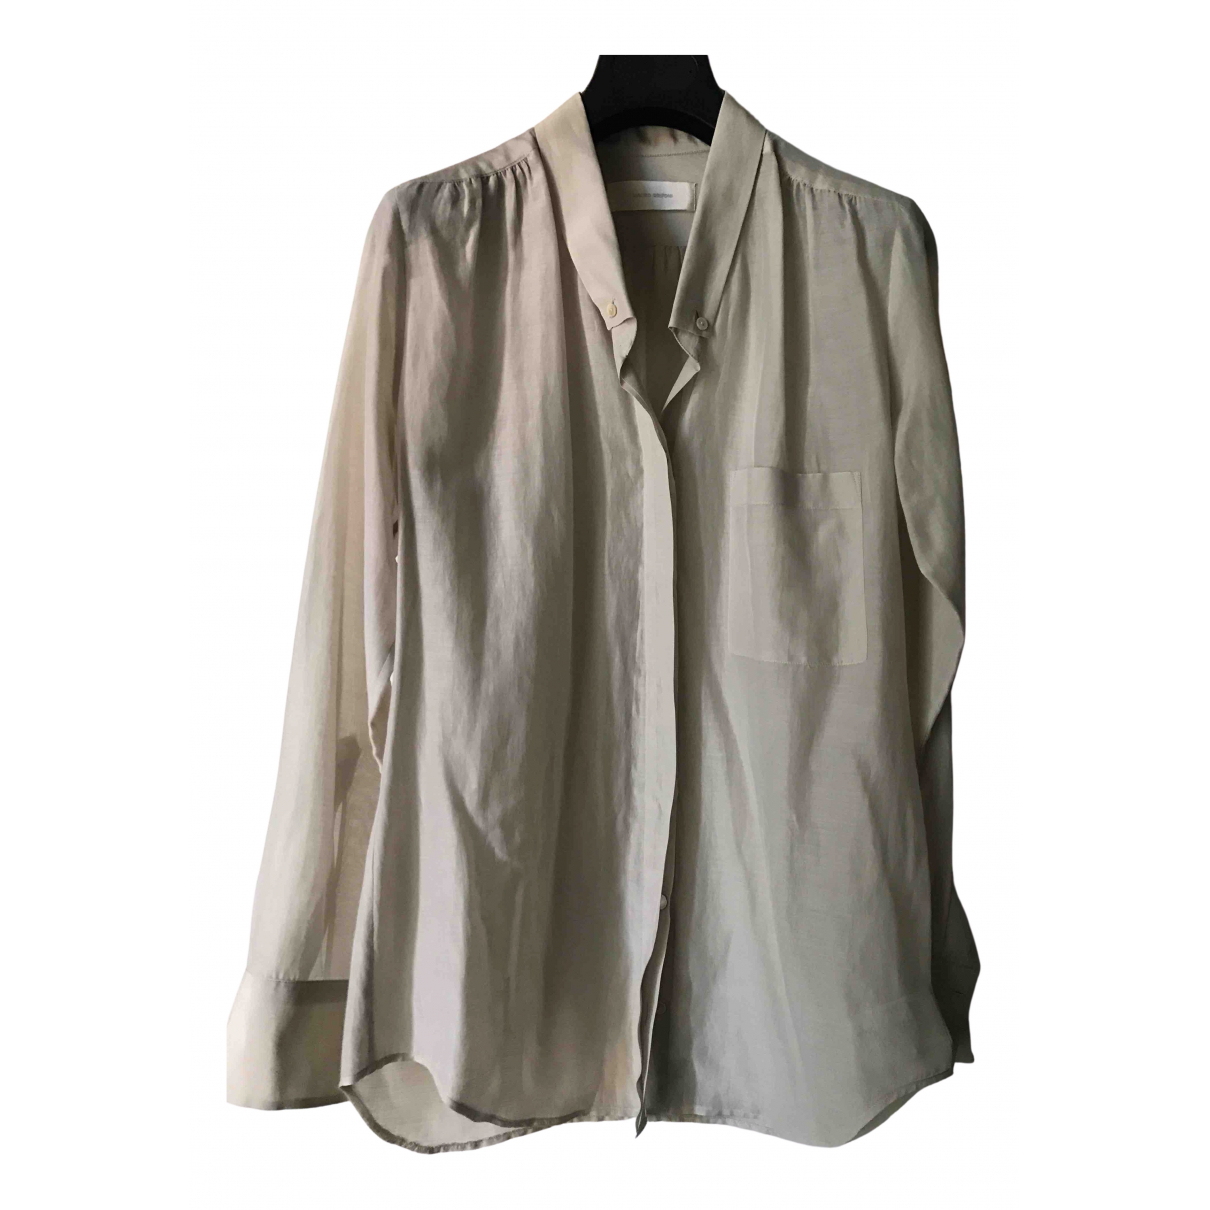 Mauro Grifoni \N Beige Cotton  top for Women 38 IT